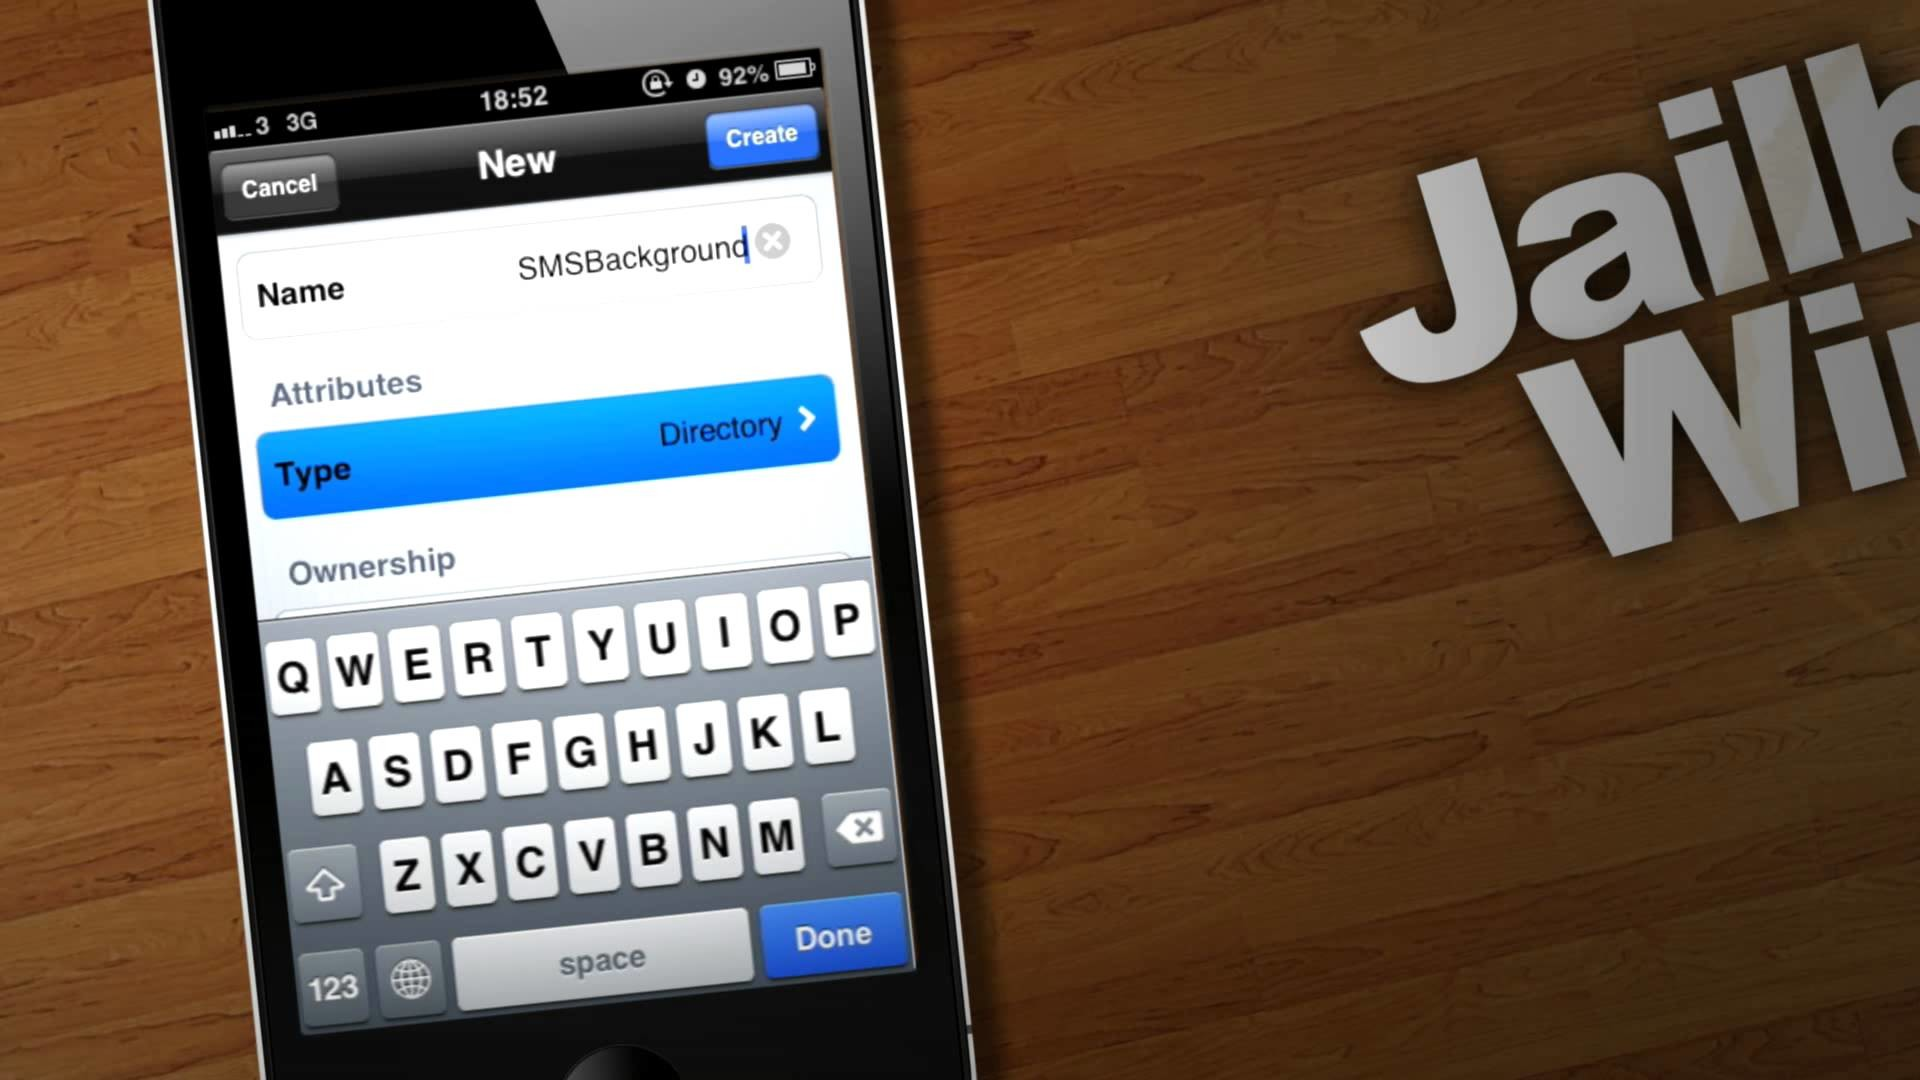 Res: 1920x1080, How to: Get a custom SMS Background Wallpaper on iPhones (WITHOUT SMS  BACKGROUND APP) - Every IOS